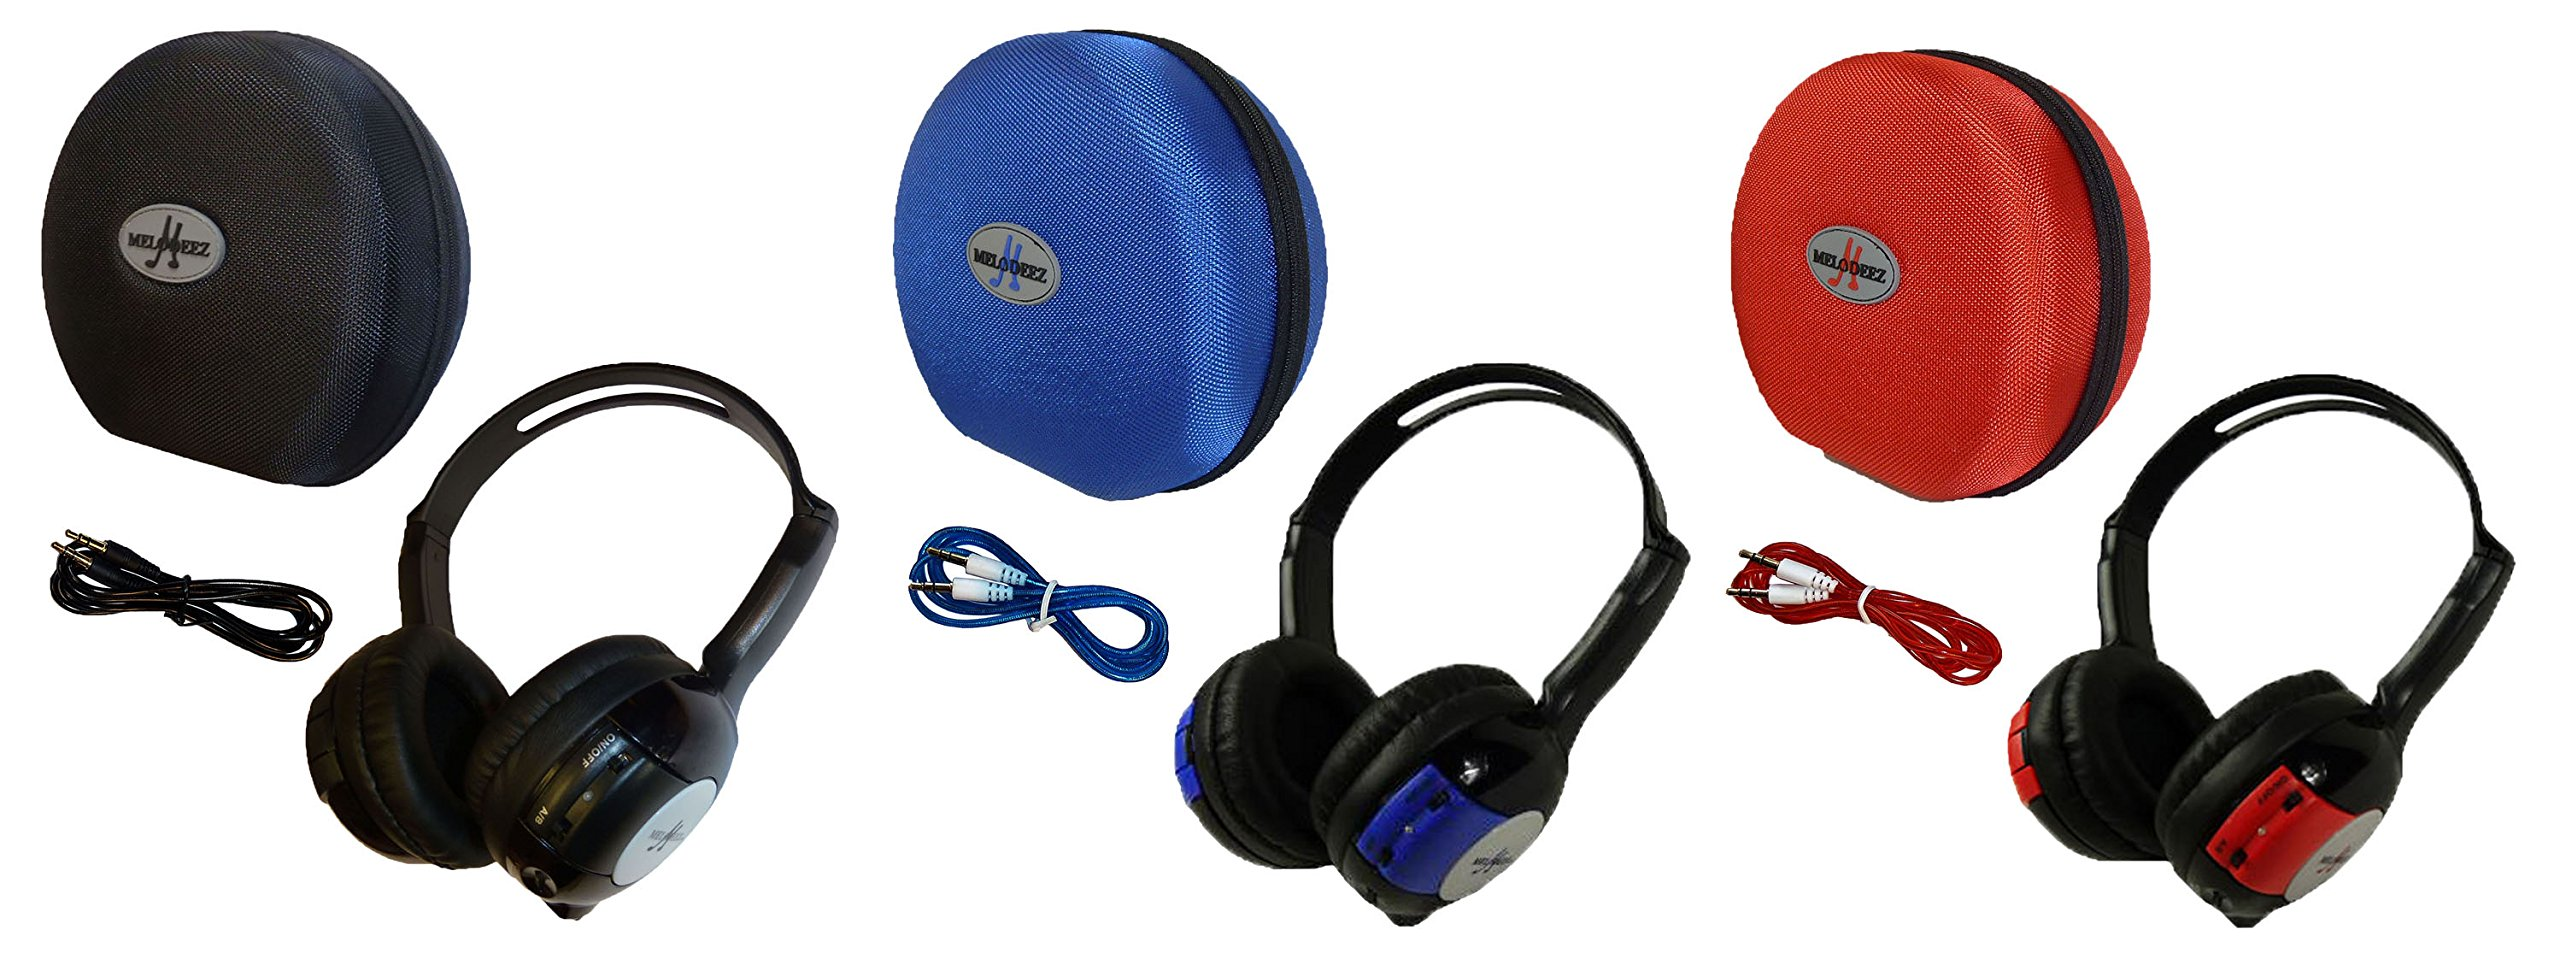 3 Pack Kid Sized Wireless Infrared Car DVD IR Automotive Colored Adjustable 2 Channel Headphones With Case and 3.5mm Auxiliary Cord. Note: Will Not Work on 2017+ GM's or Pacifica by Wisconsin Auto Supply